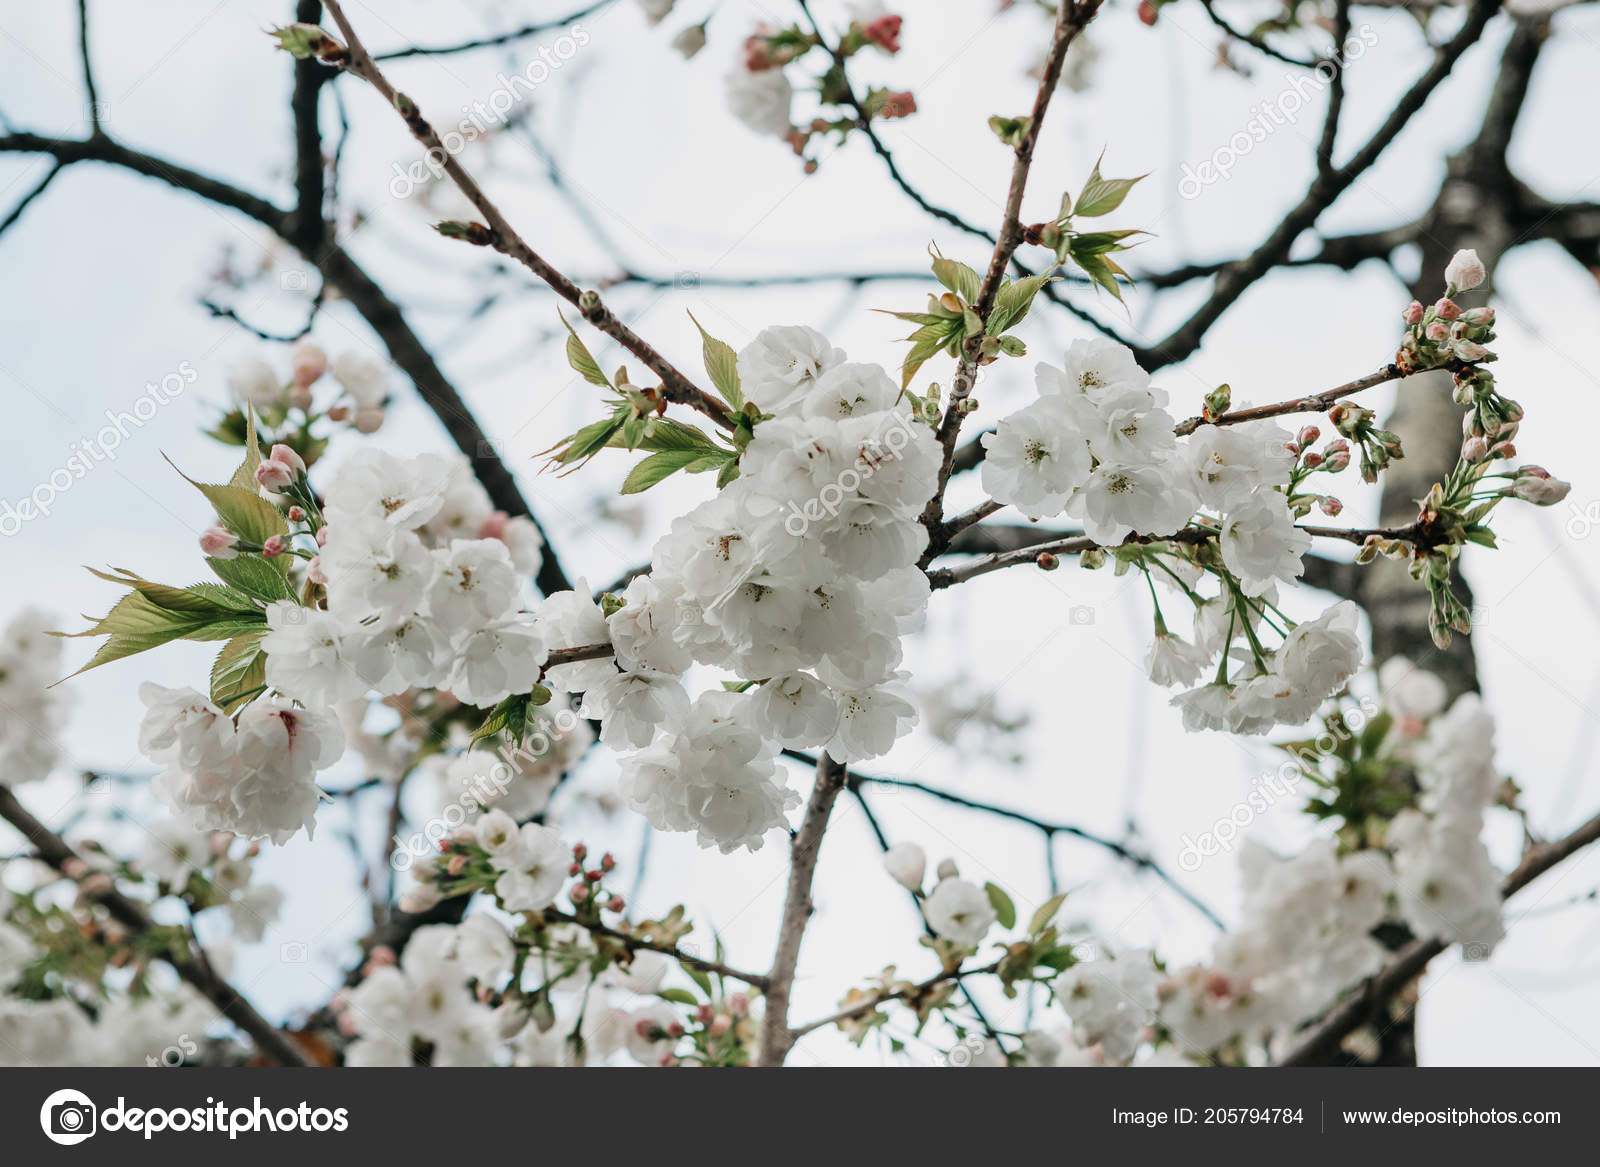 Branch Of A Tree With White Flowers Against The Sky Stock Photo